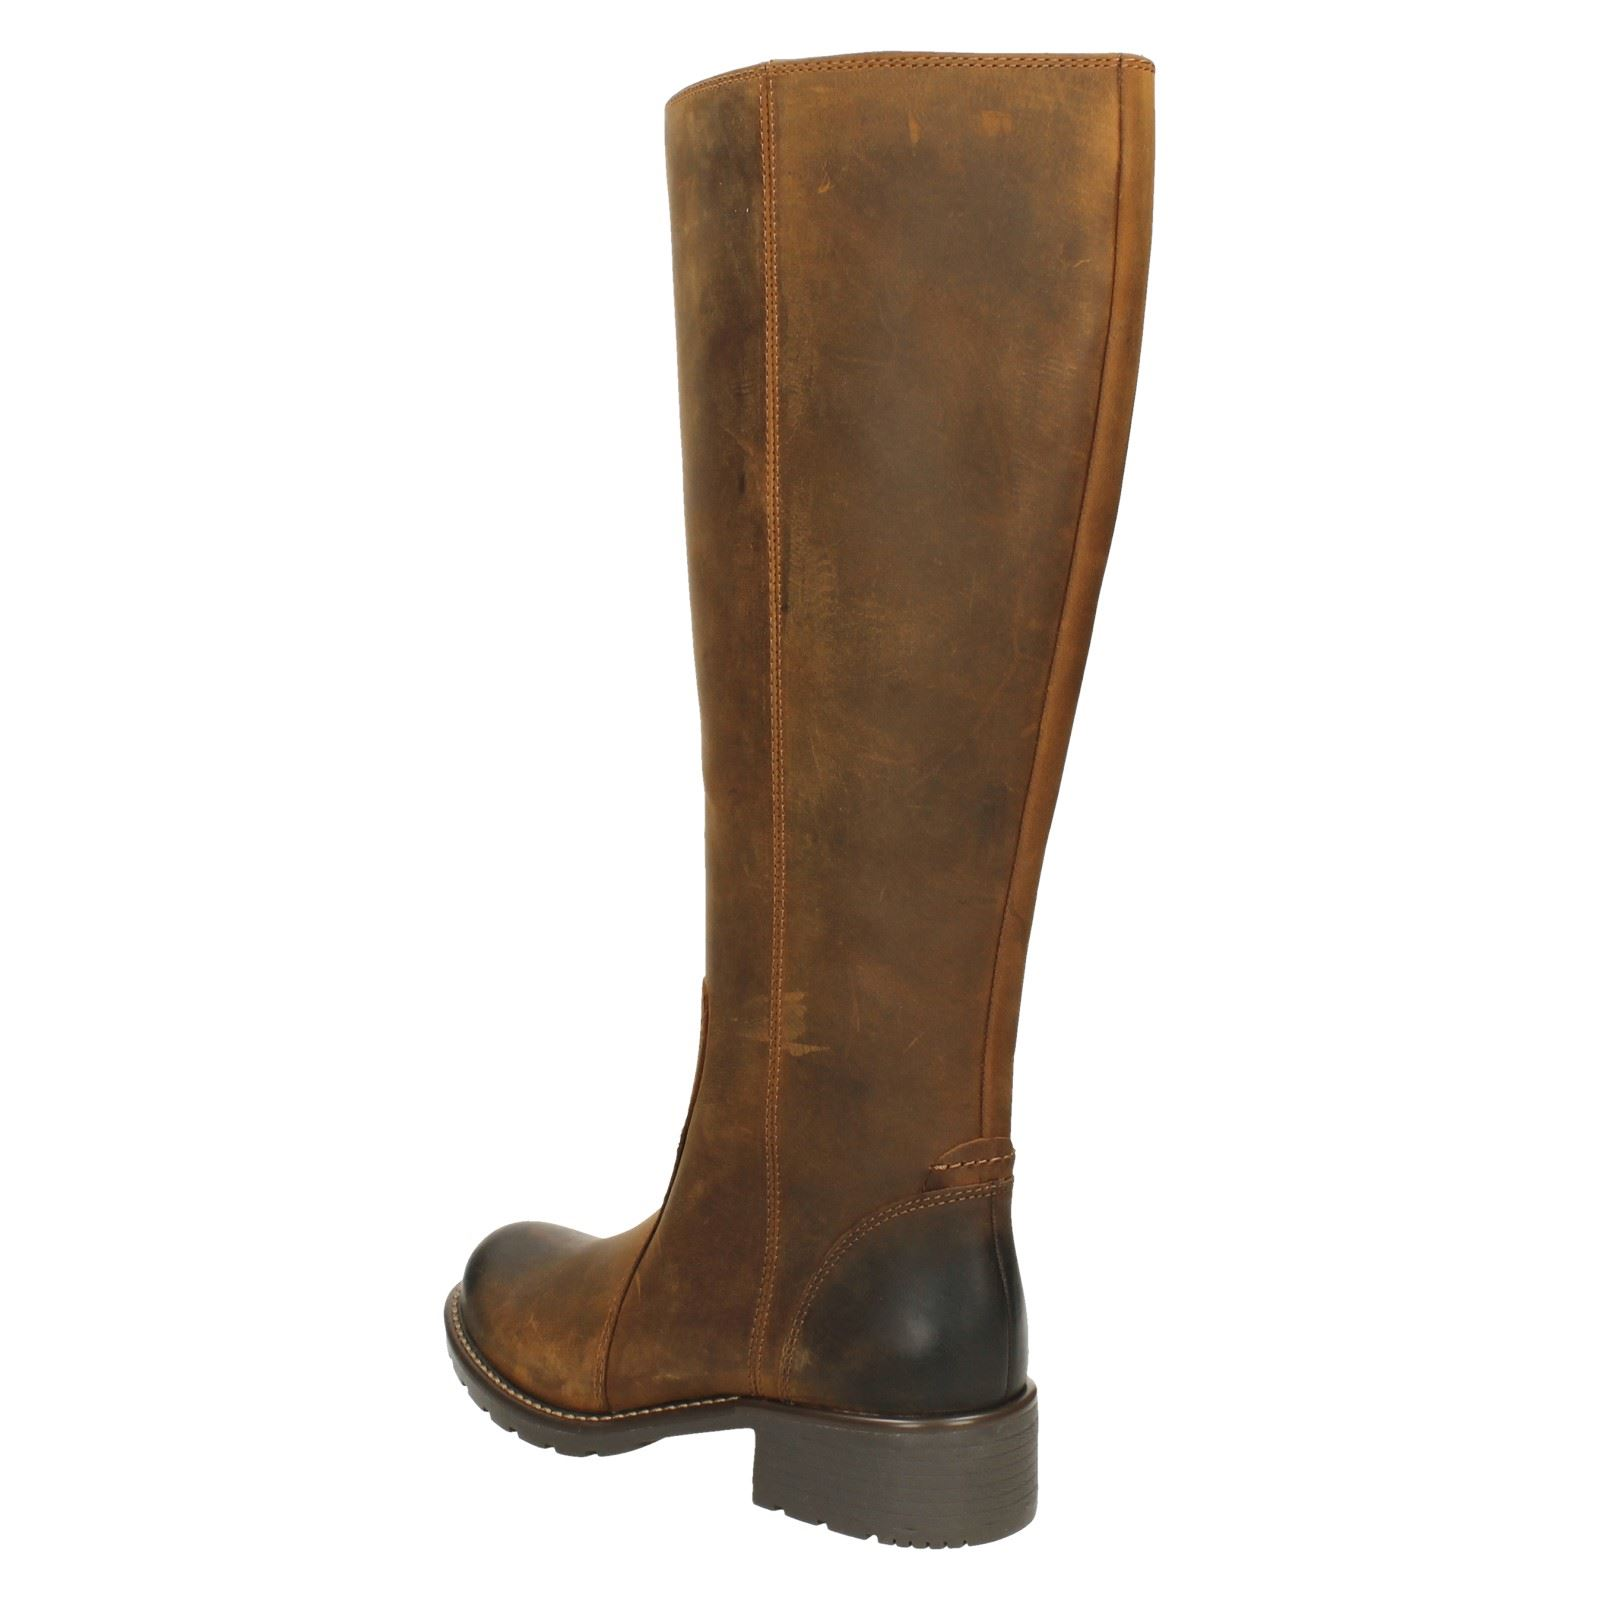 """NEW Clarks Ladies /""""Orinoco Eave/"""" Black Leather Knee High Long Boots UK 3-3.5 D"""